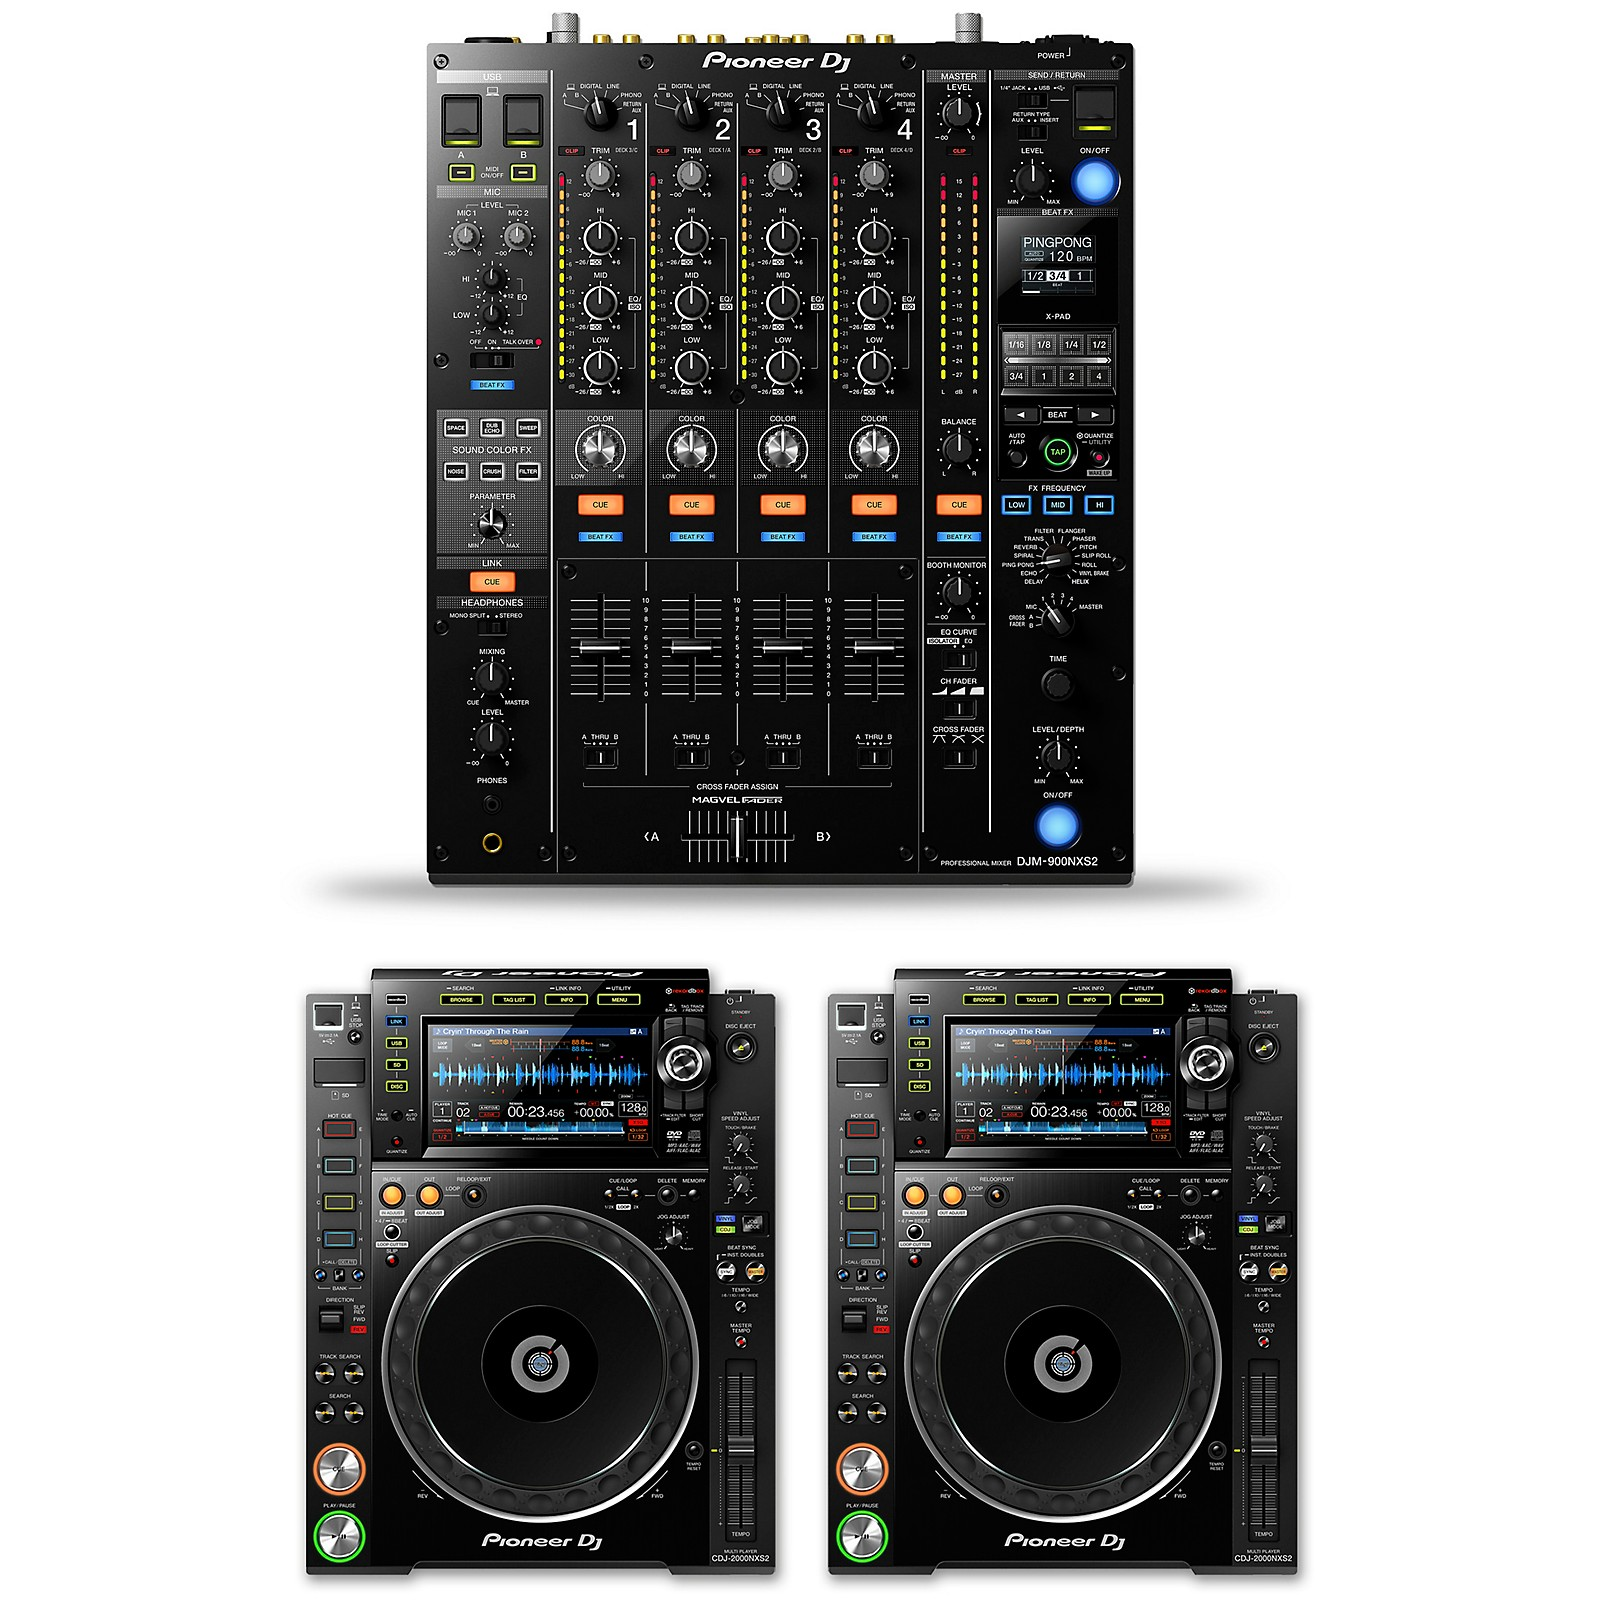 Pioneer DJ Package with DJM-900NXS2 Mixer and CDJ-2000NXS2 Media Players